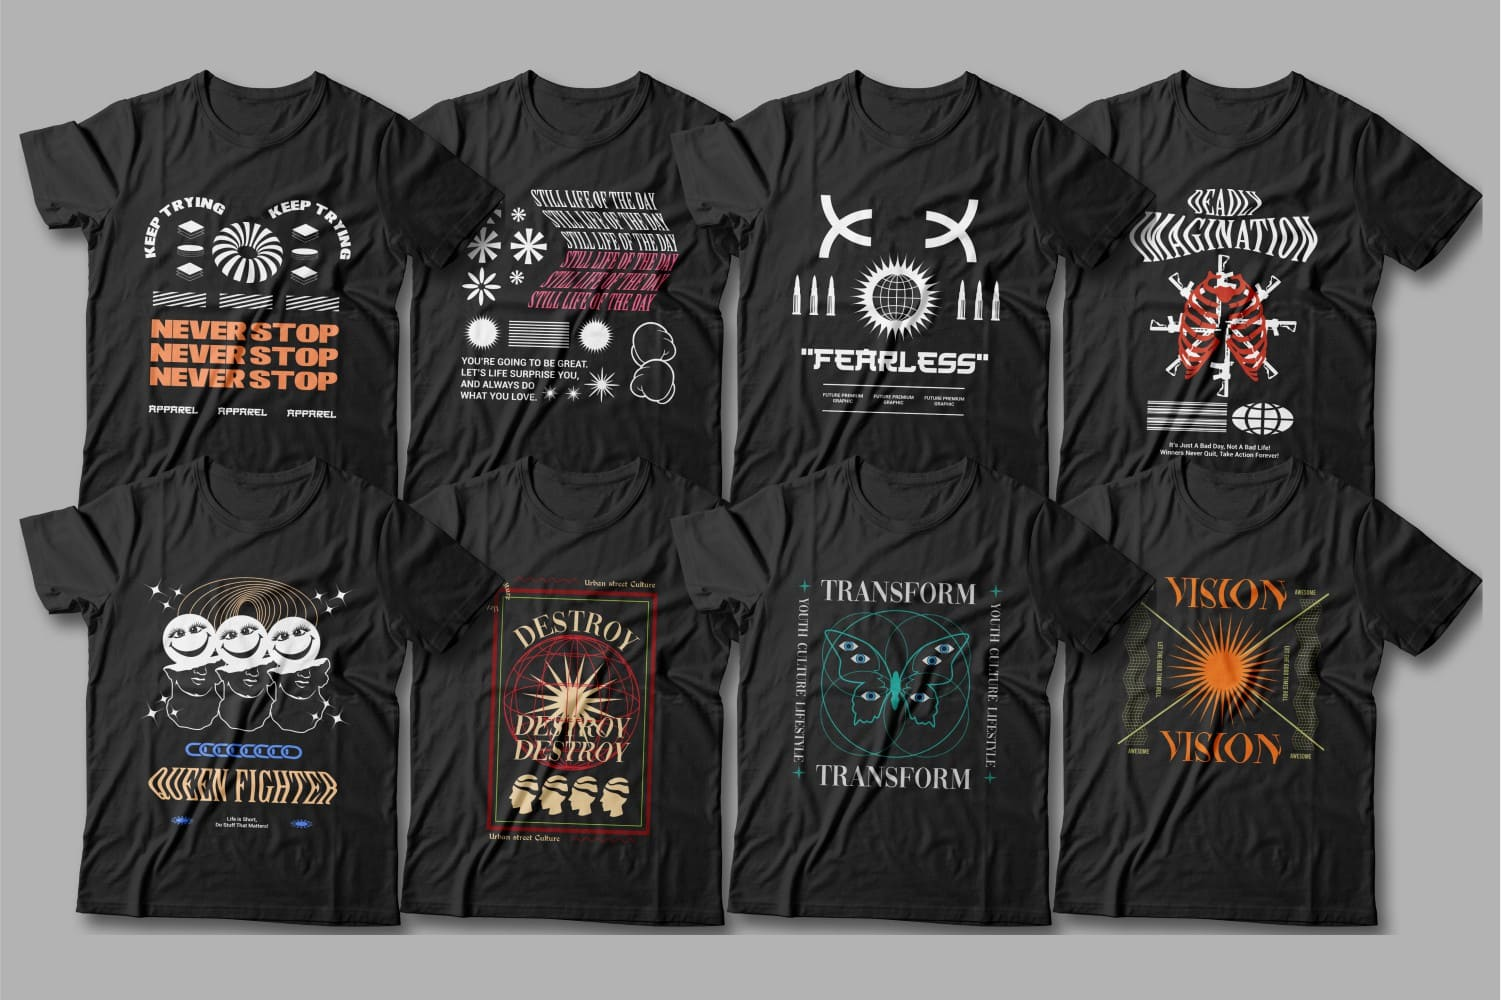 Black t-shirts with contemporary design.